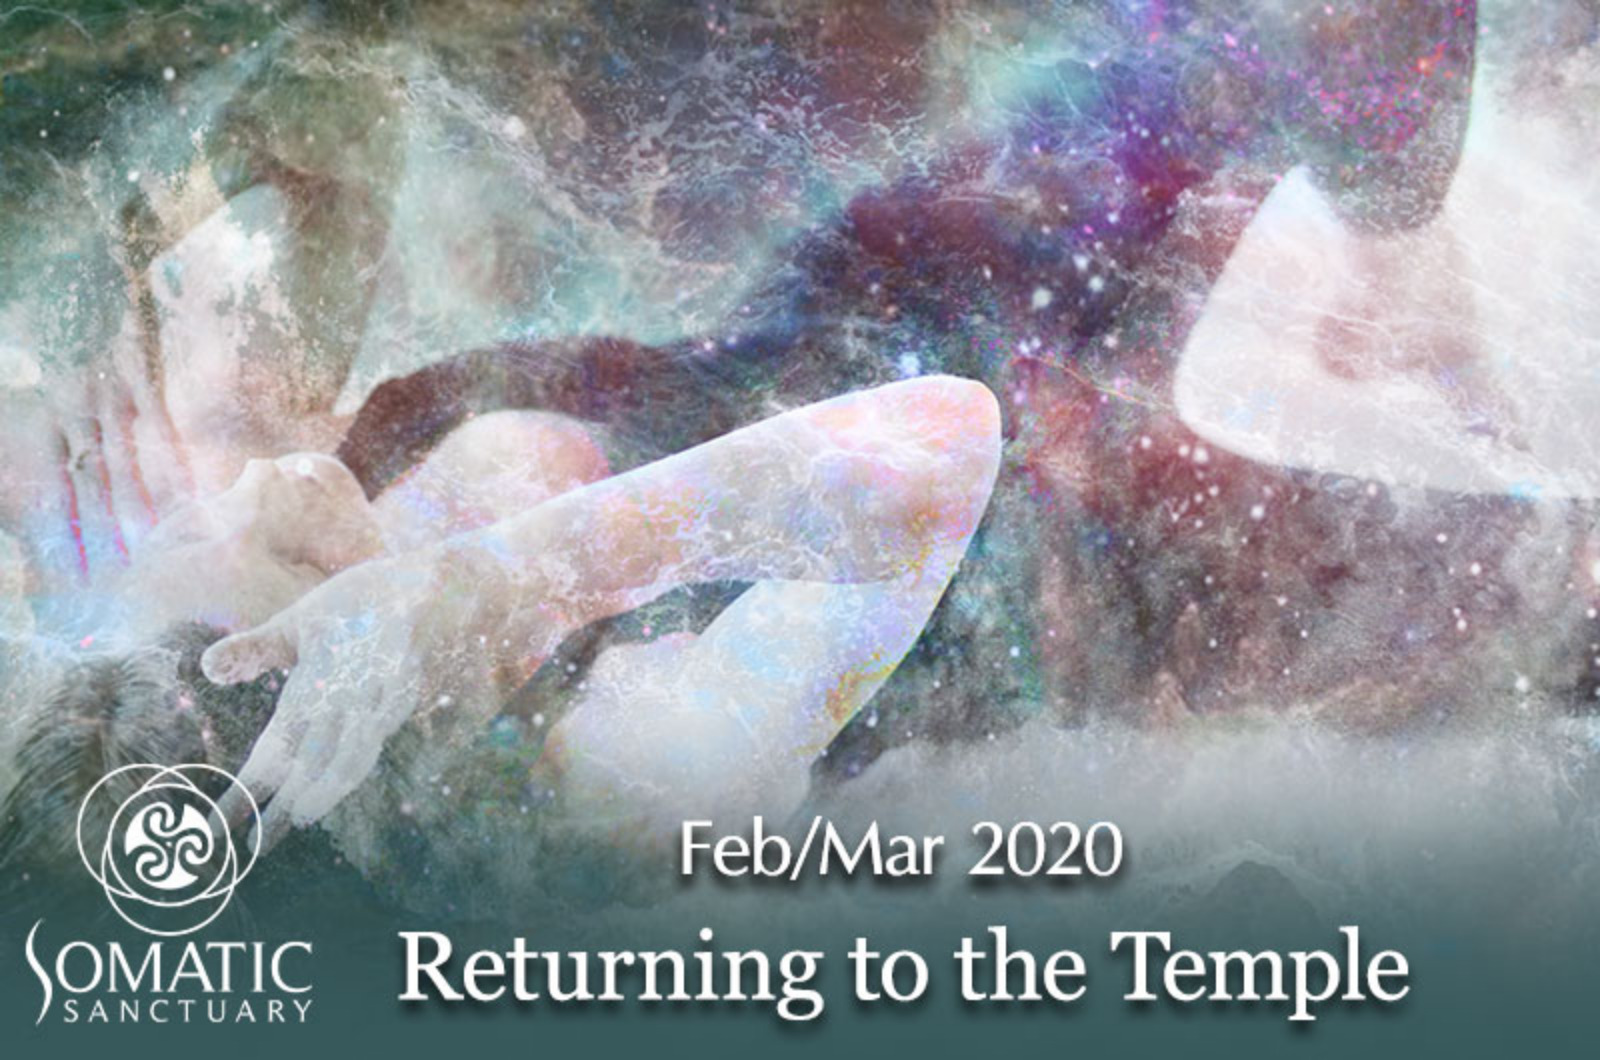 Returning to the Temple: Feb/Mar 2020